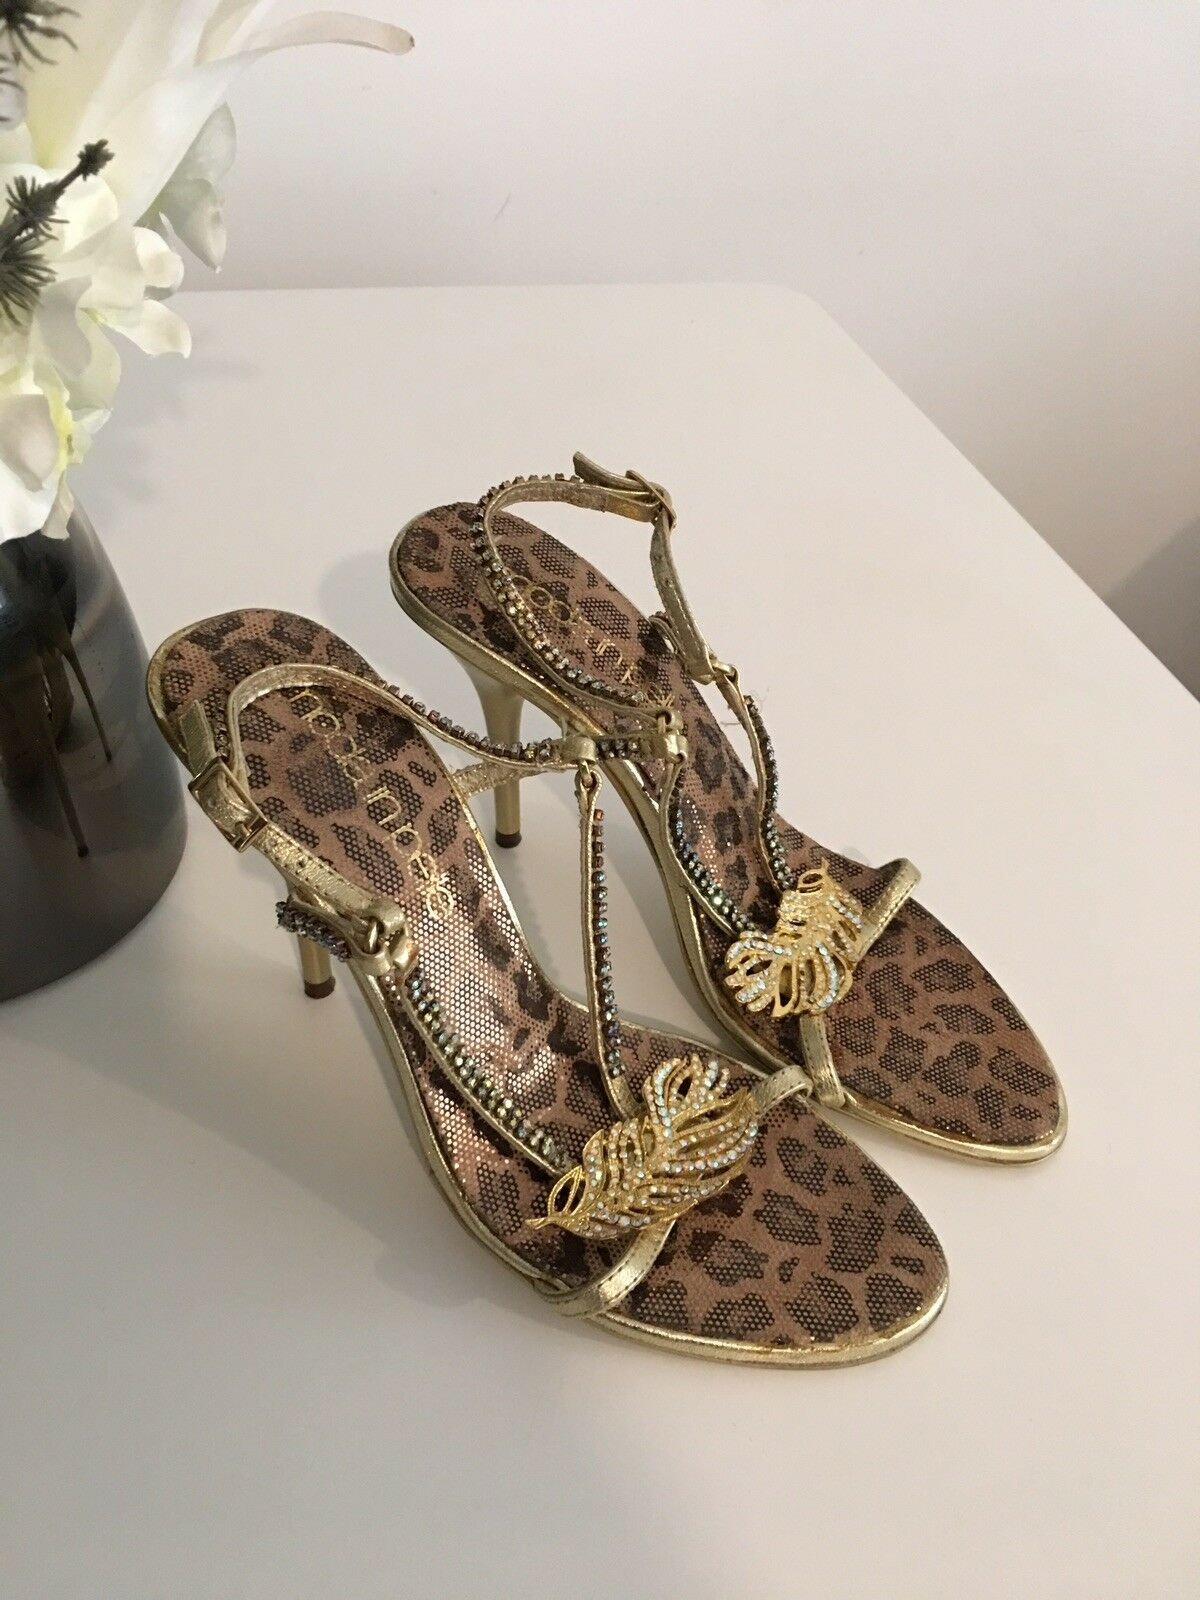 Moda in Pelle gold Sandal Size 5 Worn Once